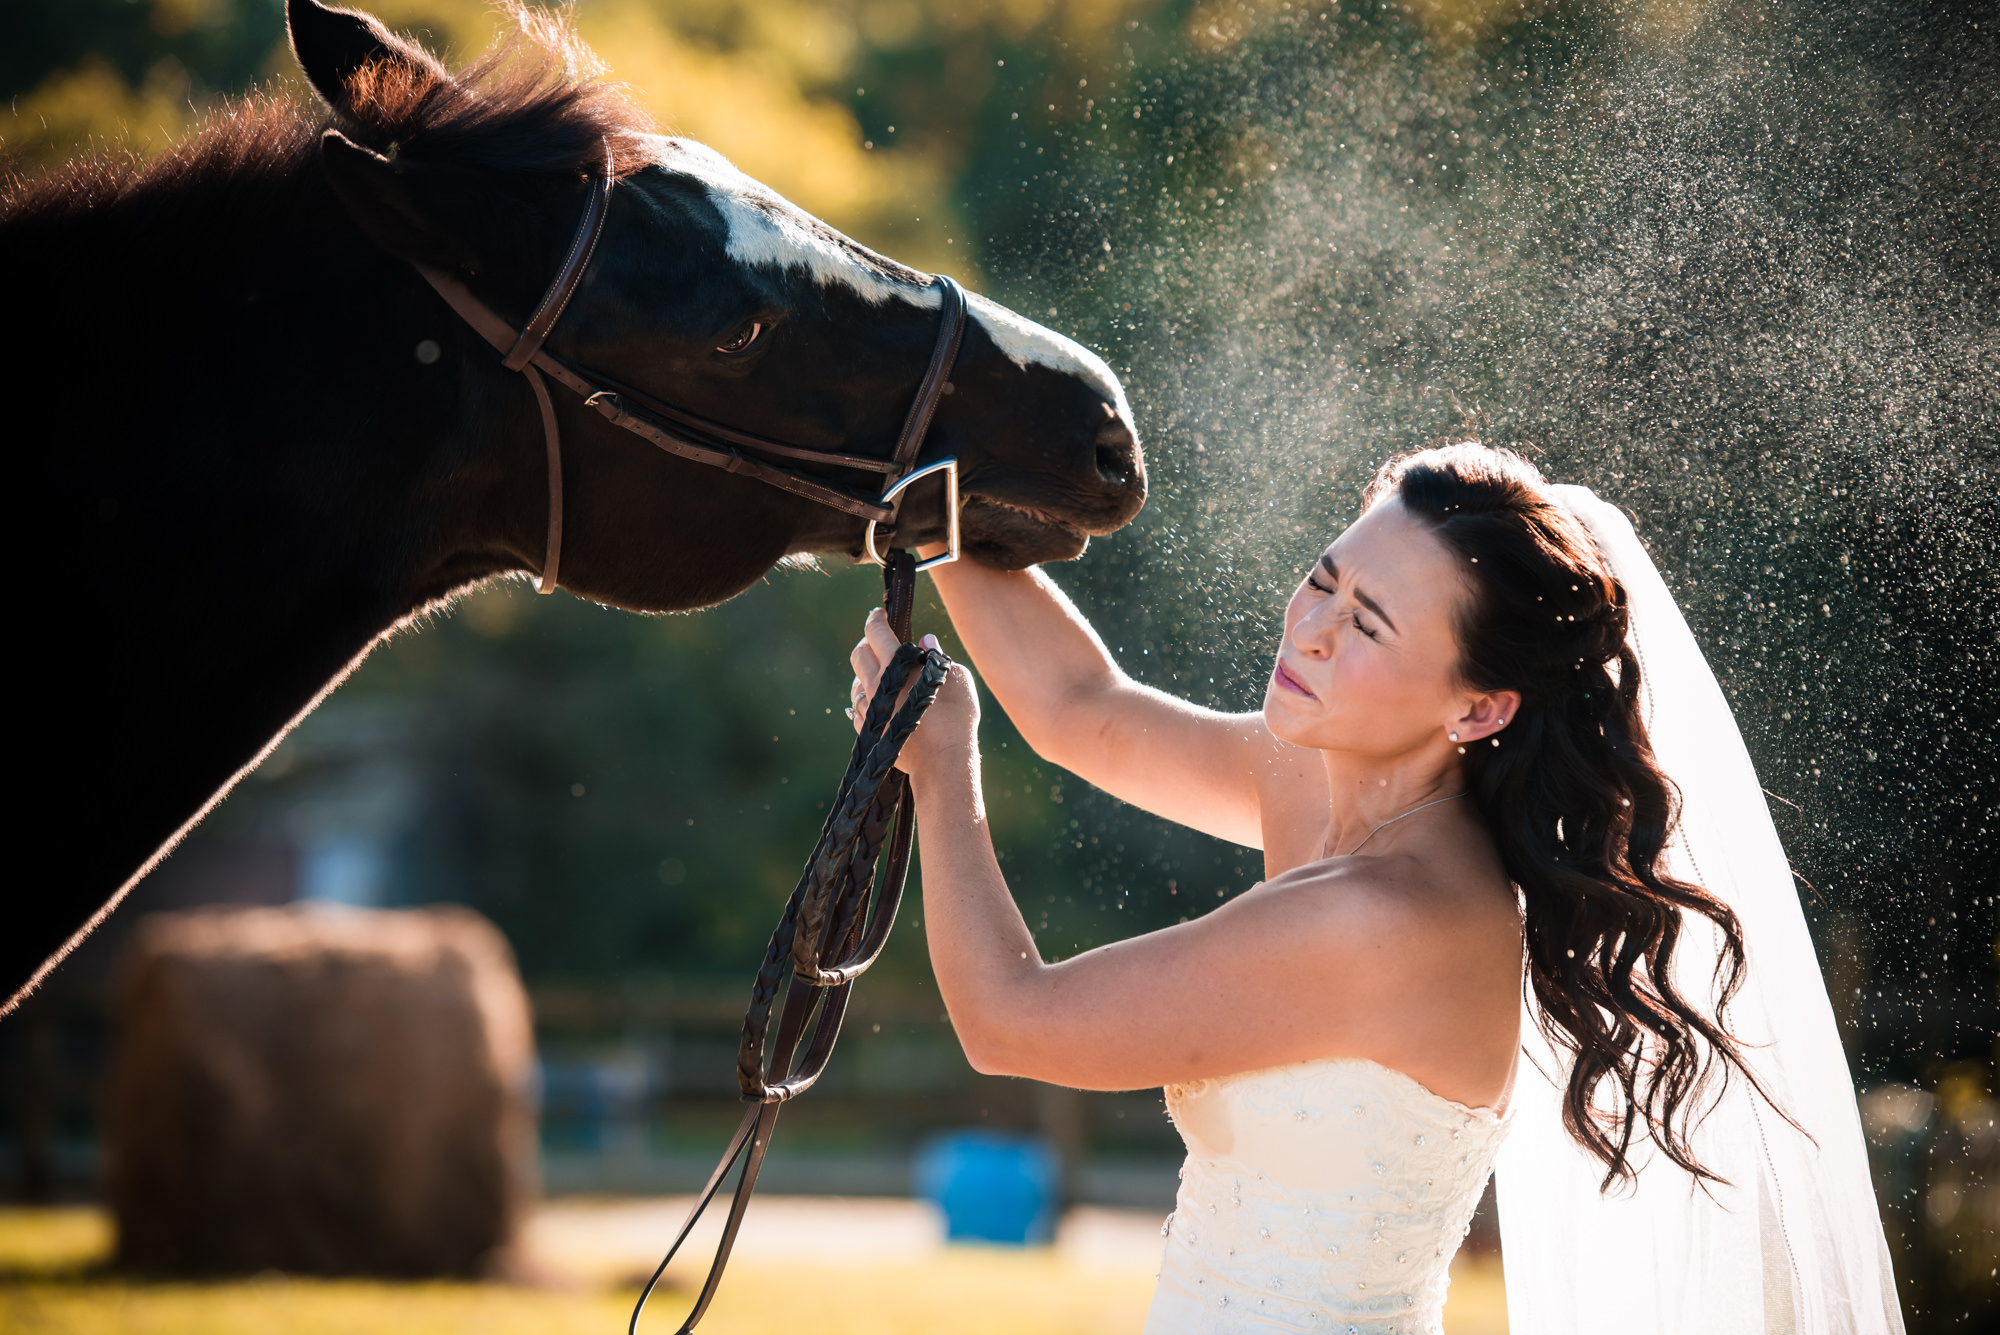 Horse sprays water at bride photo by Cliff Mautner